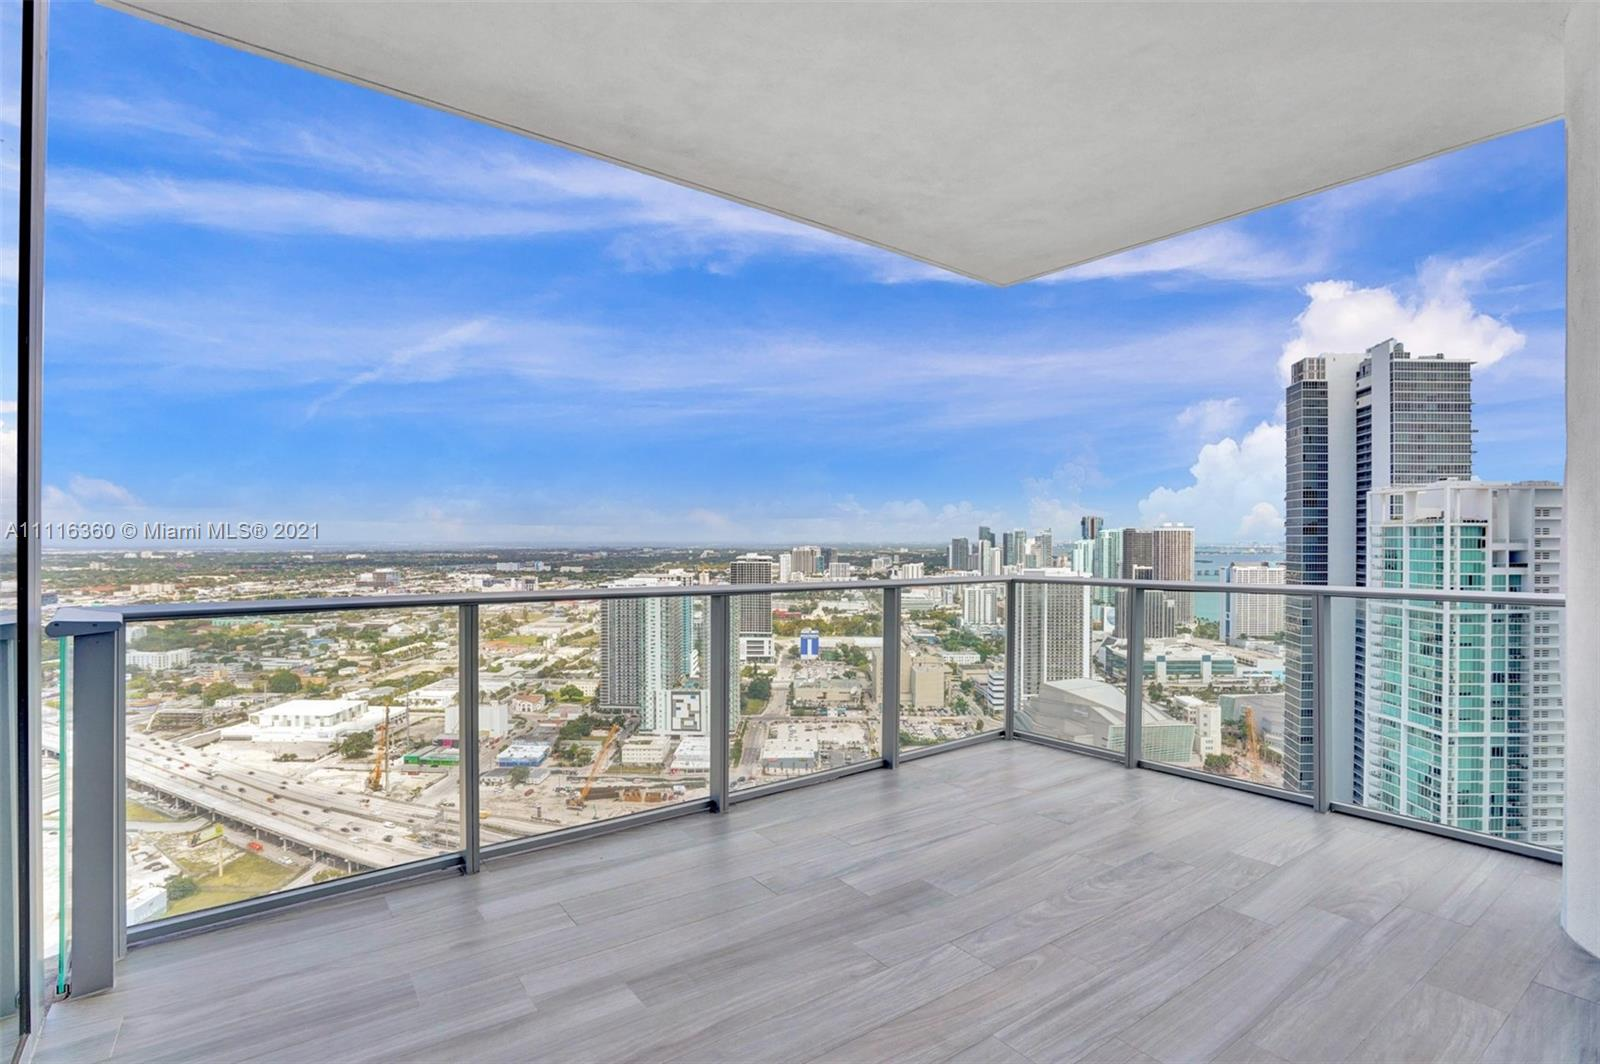 PARAMOUNT MWC Condo,For Rent,PARAMOUNT MWC Brickell,realty,broker,condos near me